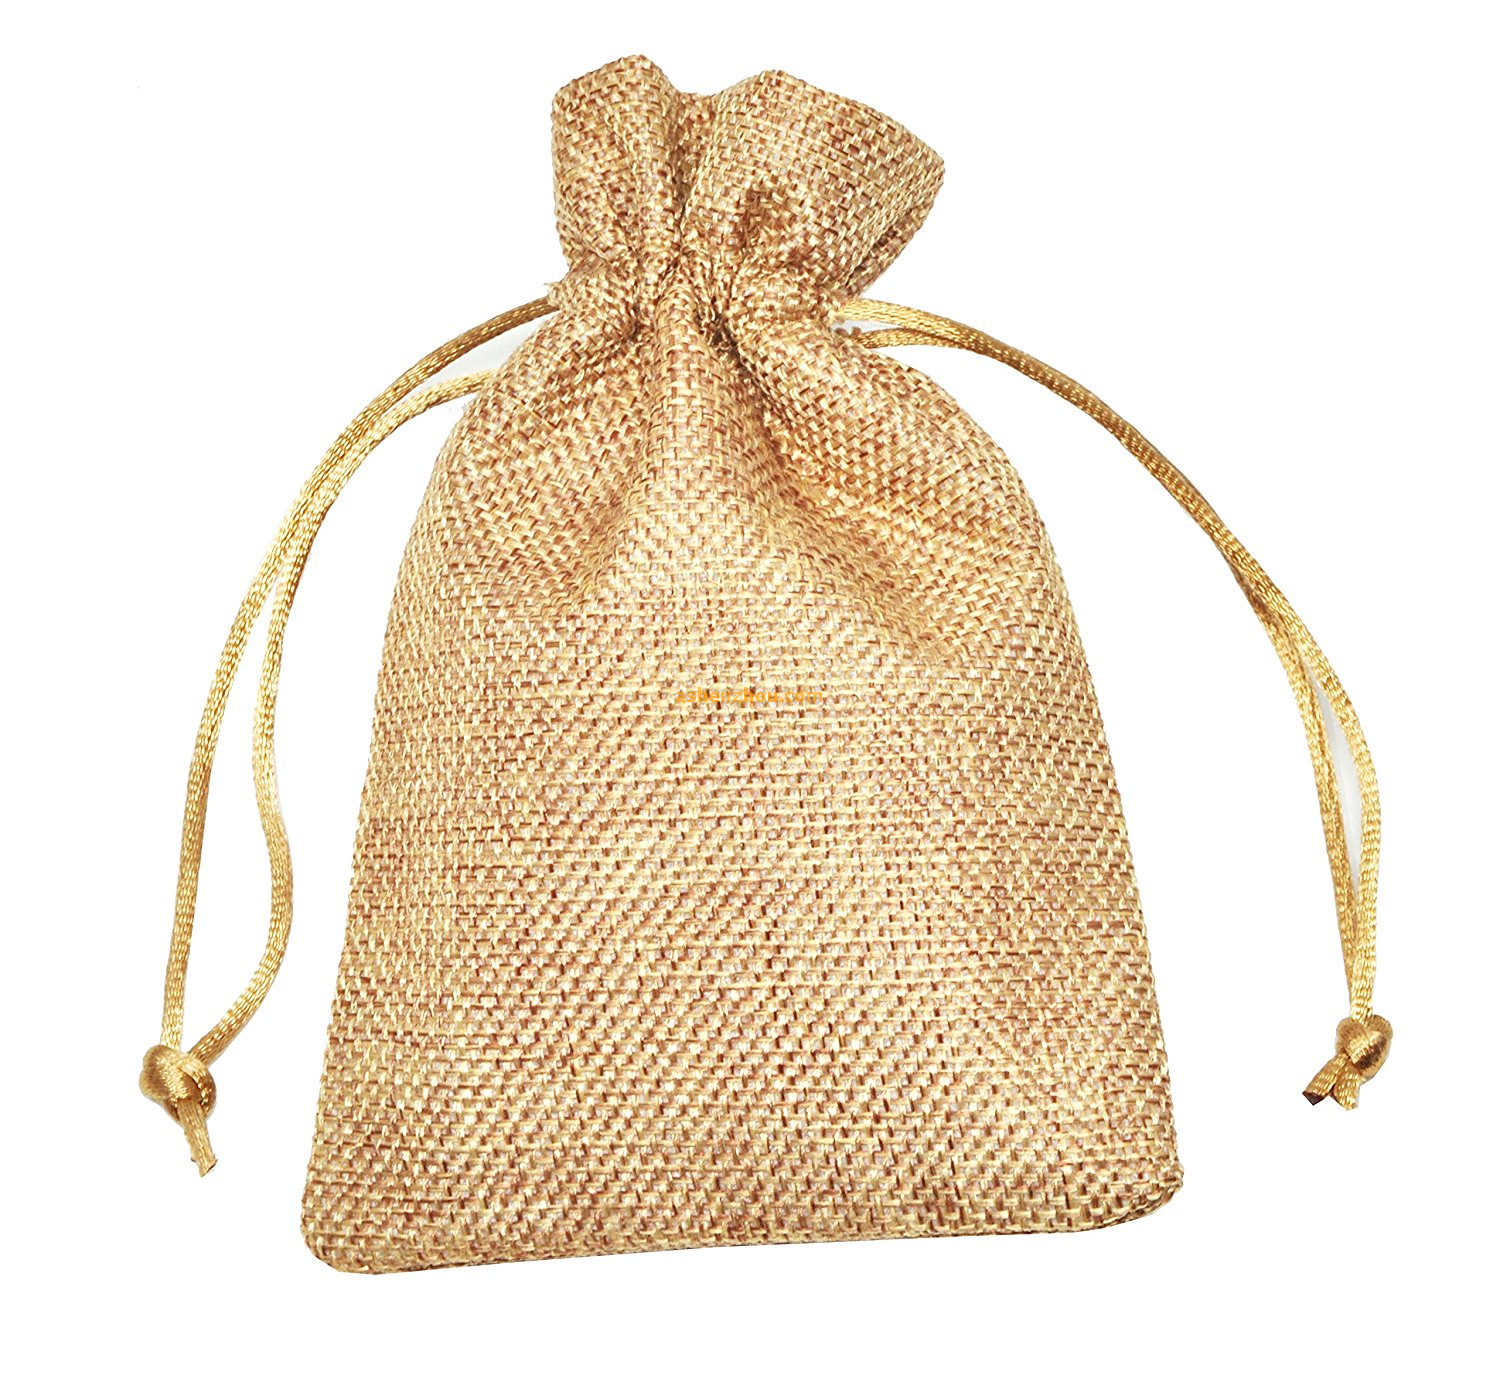 China factory wholesale price promotiona cheap jute bags burlap tote drawstring bags with handles for promotional